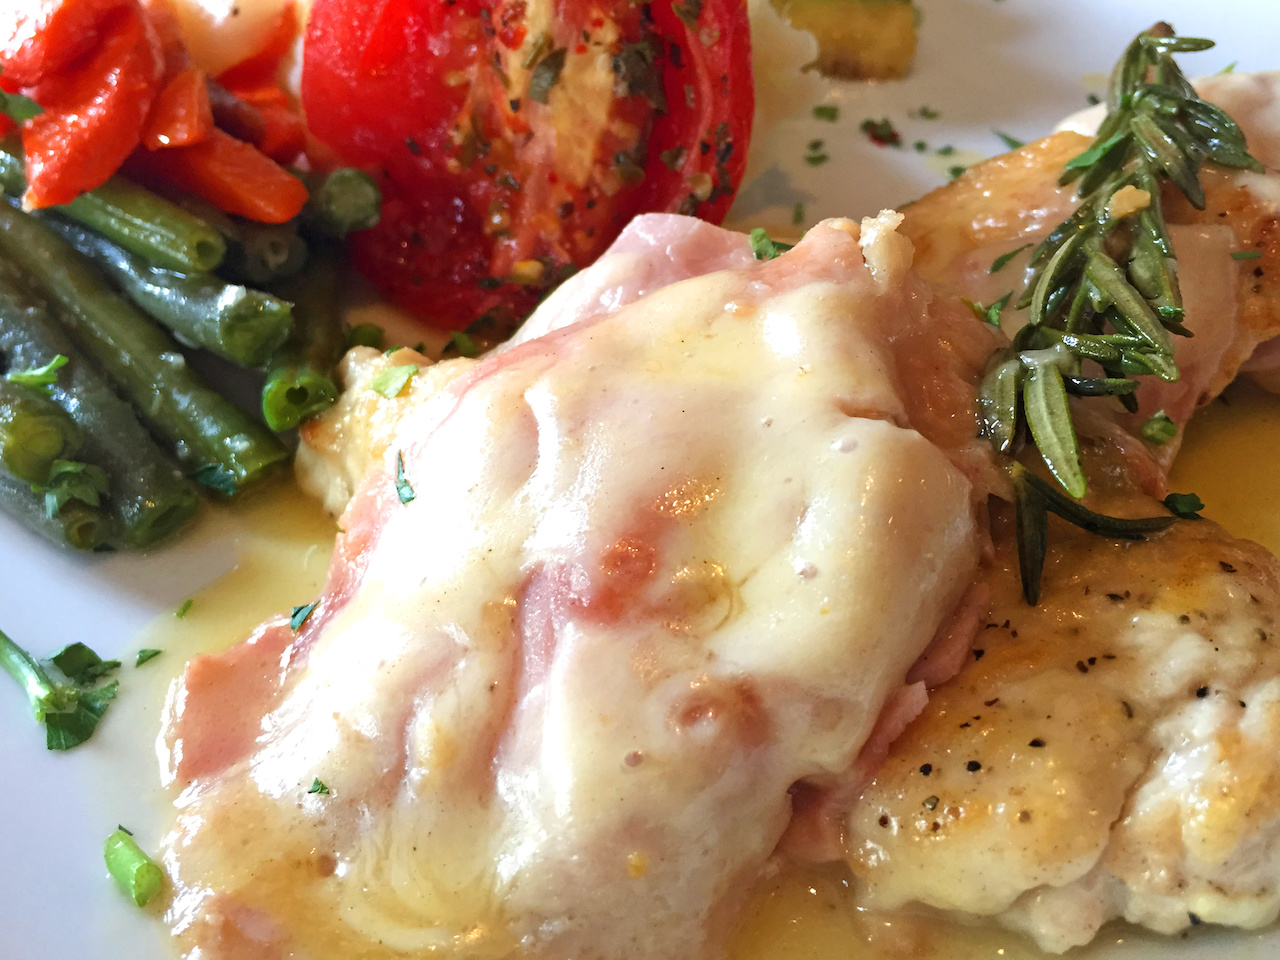 The pollo al rosmarino at Francoli's is served with seasonal vegetables.